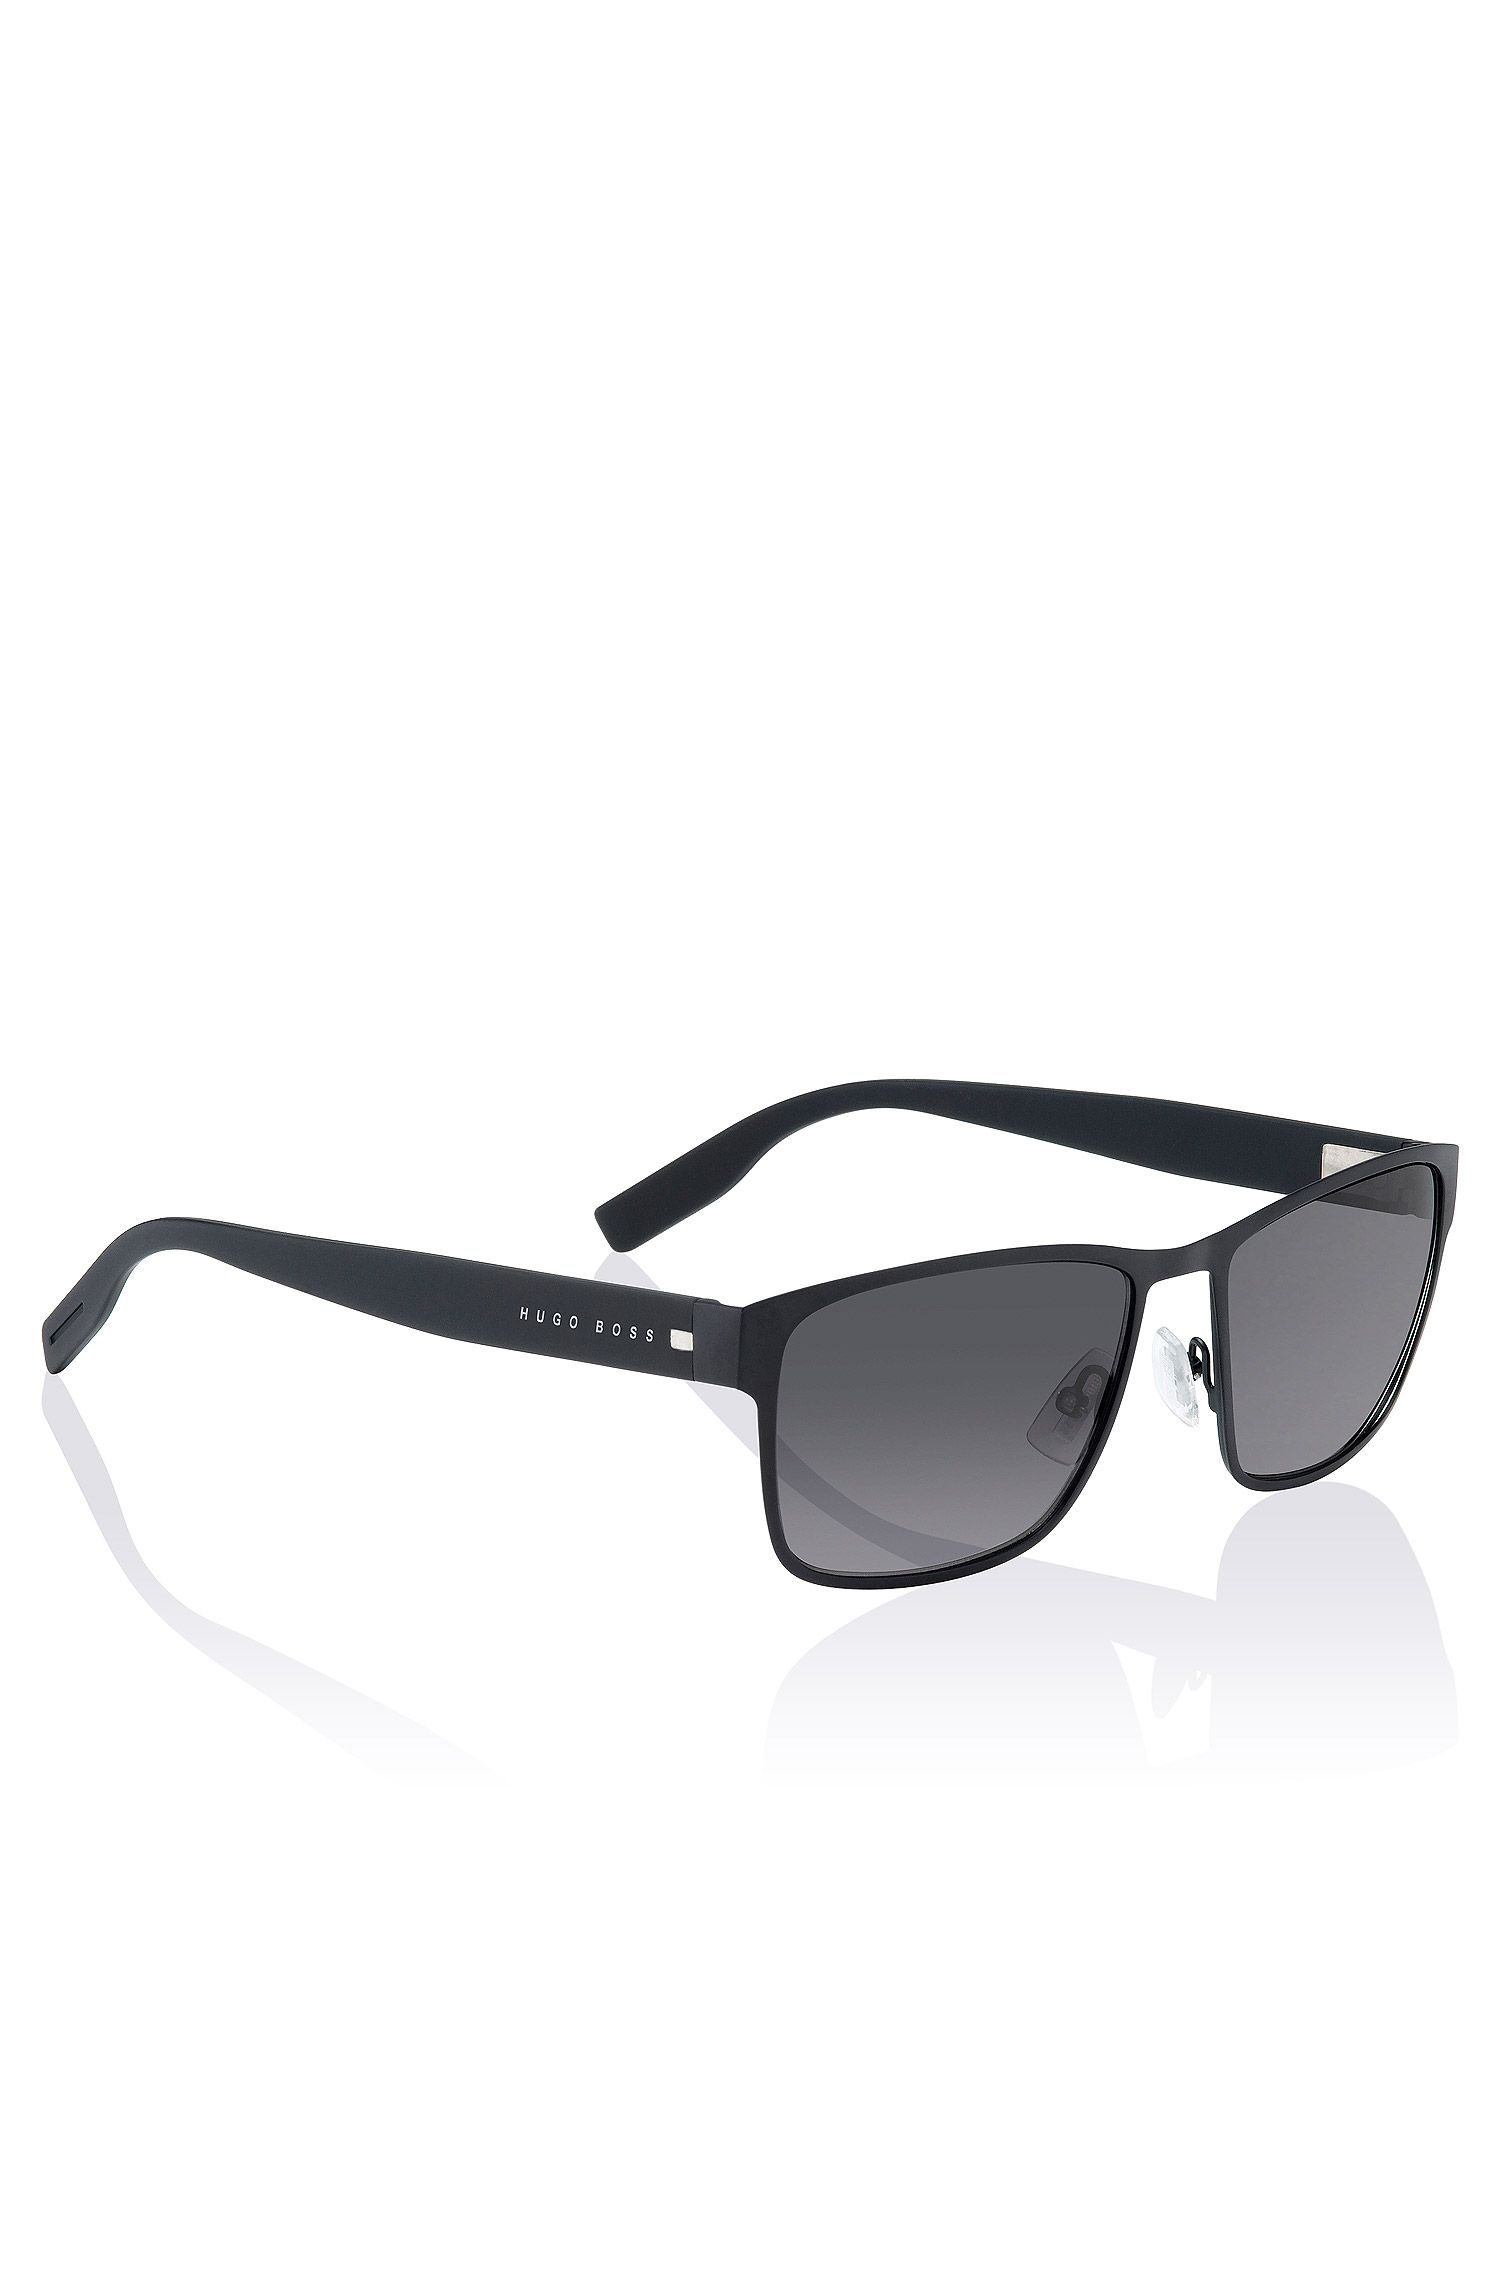 Sunglasses 'BOSS 0561/S'